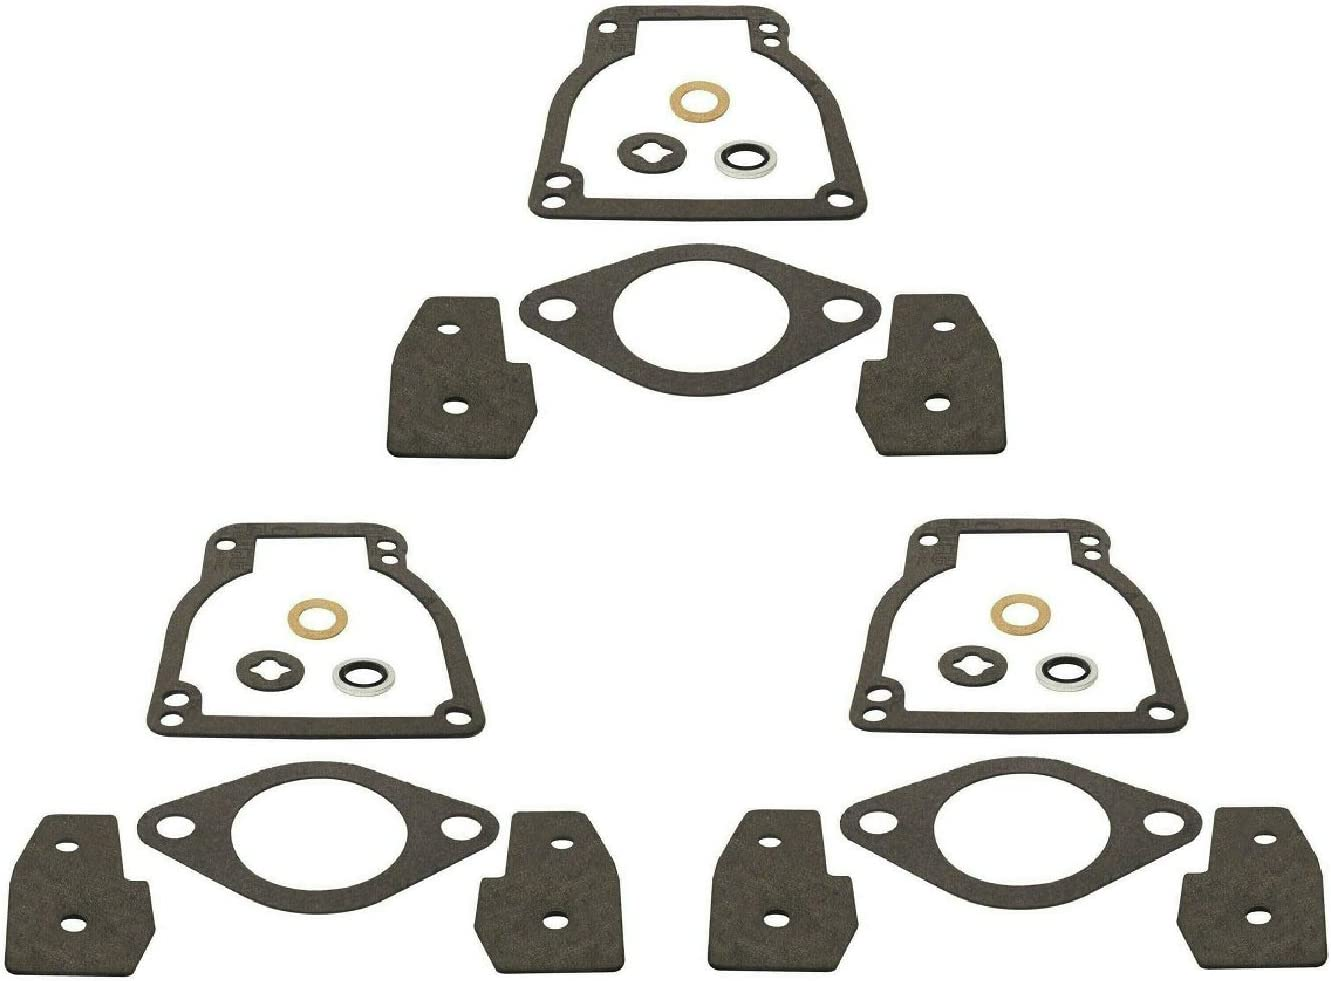 GLM (3 Pack) Carburetor Kit for Mercury Mariner 30 40 50 55 60 70 75 80 90 100 115 125 Hp WME Stamped Carburetors Replaces 18-7211 1395-811223-1 Please Read Product Description for Exact Applications